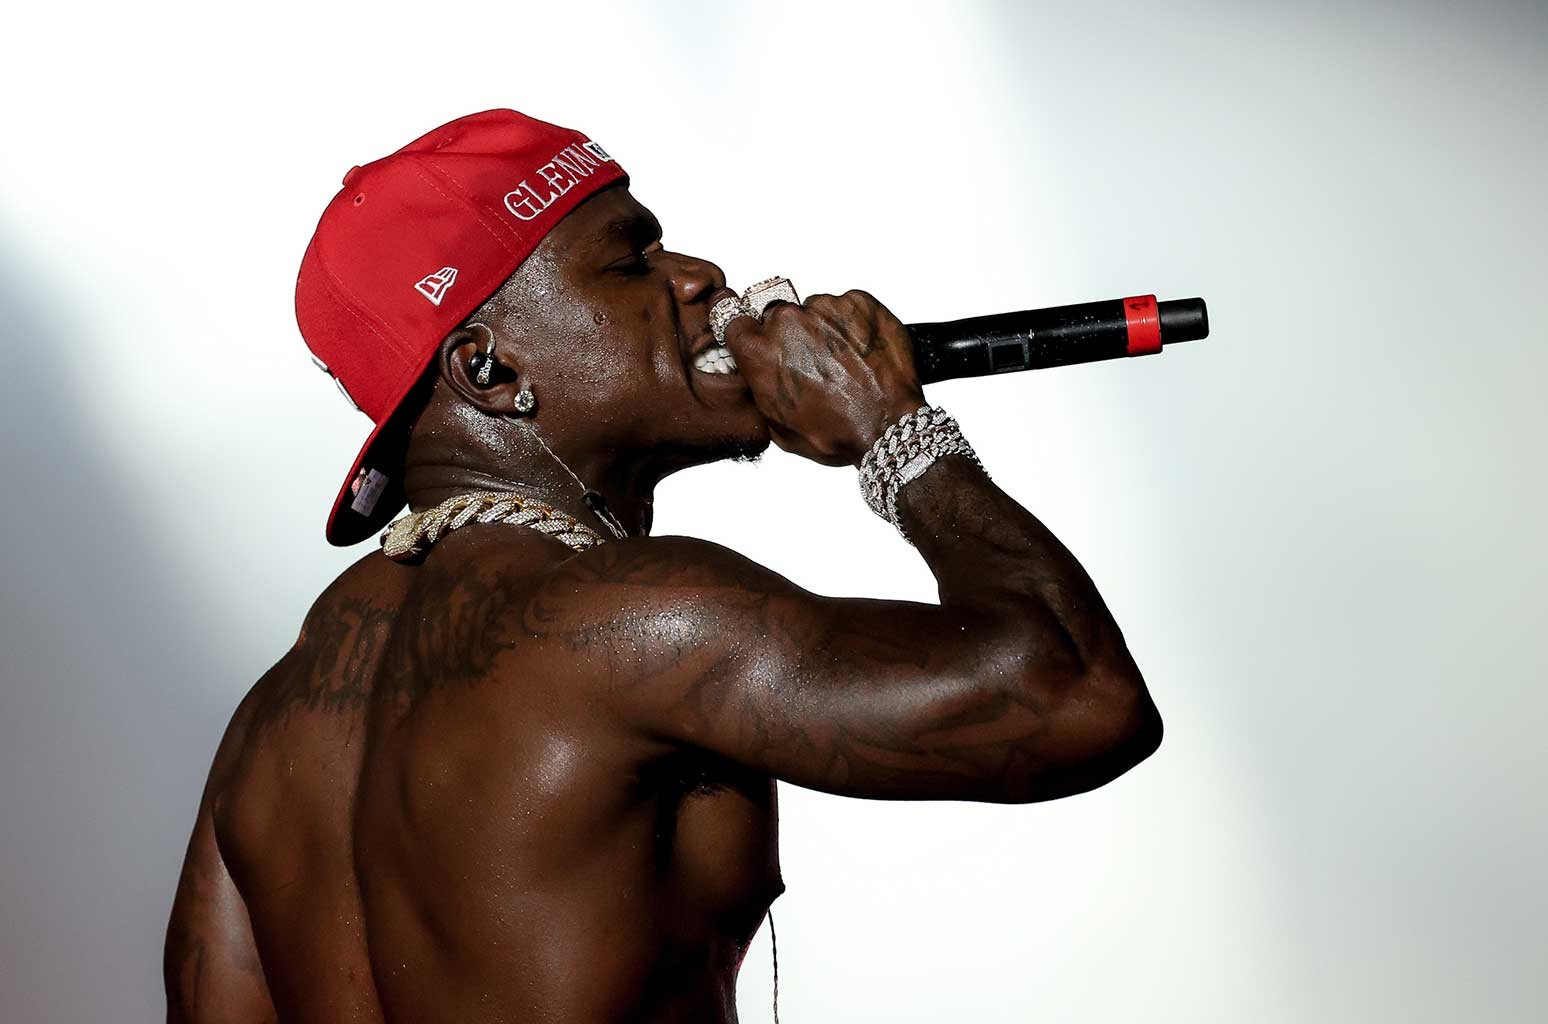 DaBaby performing at Rolling Loud 2021